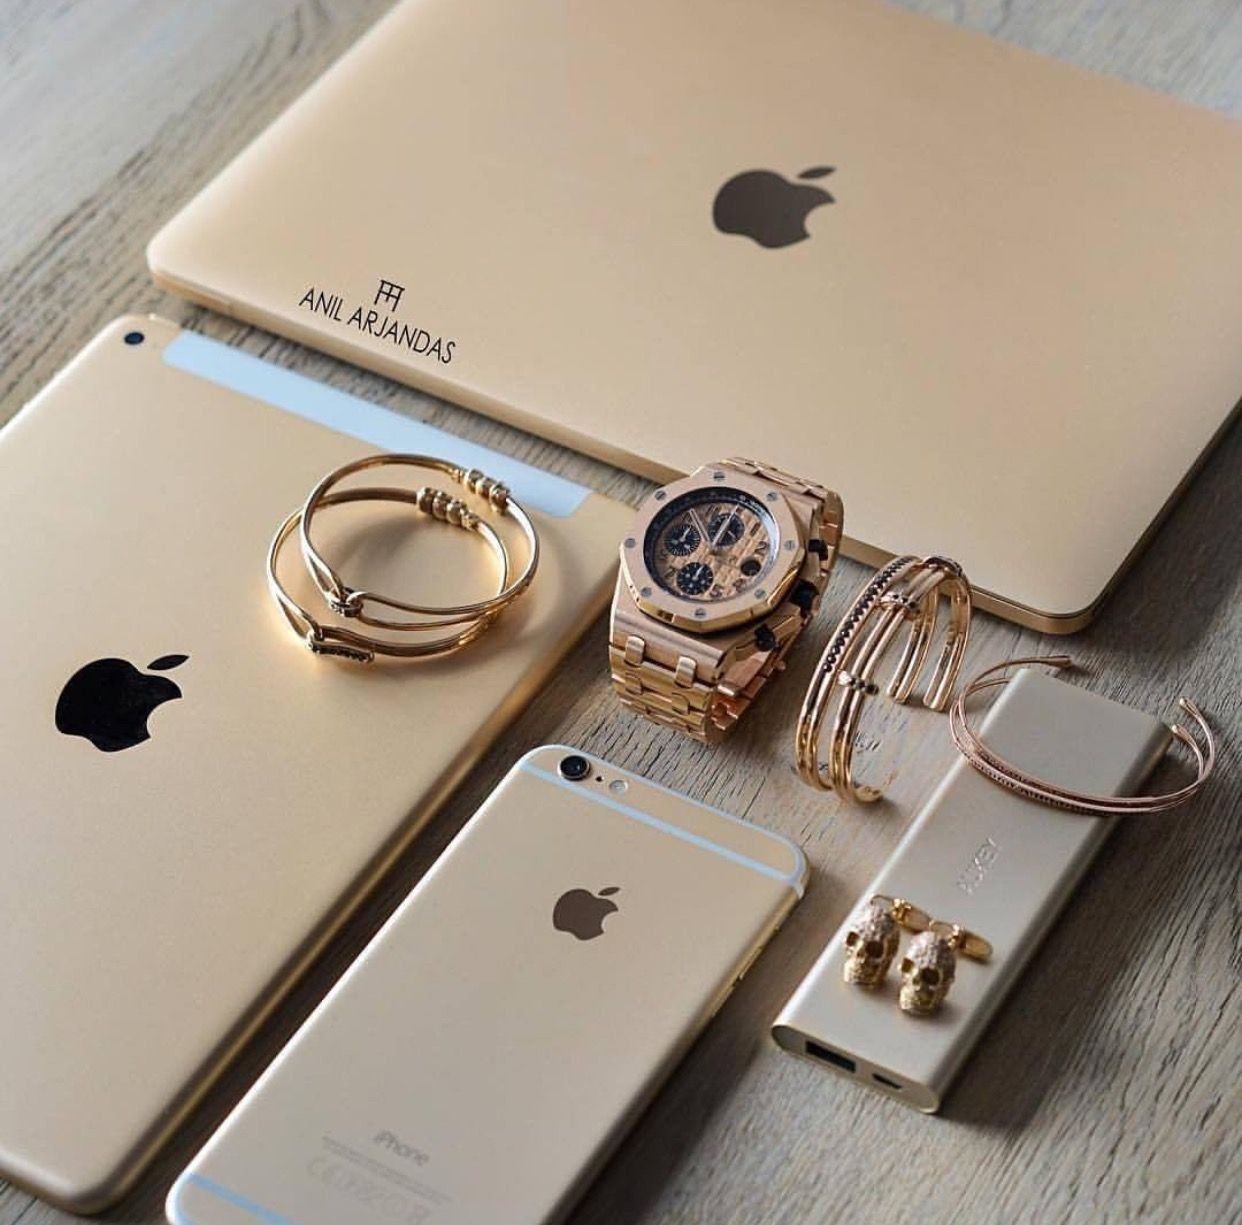 (Tech Aesthetic Life) Iphone accessories, Apple phone